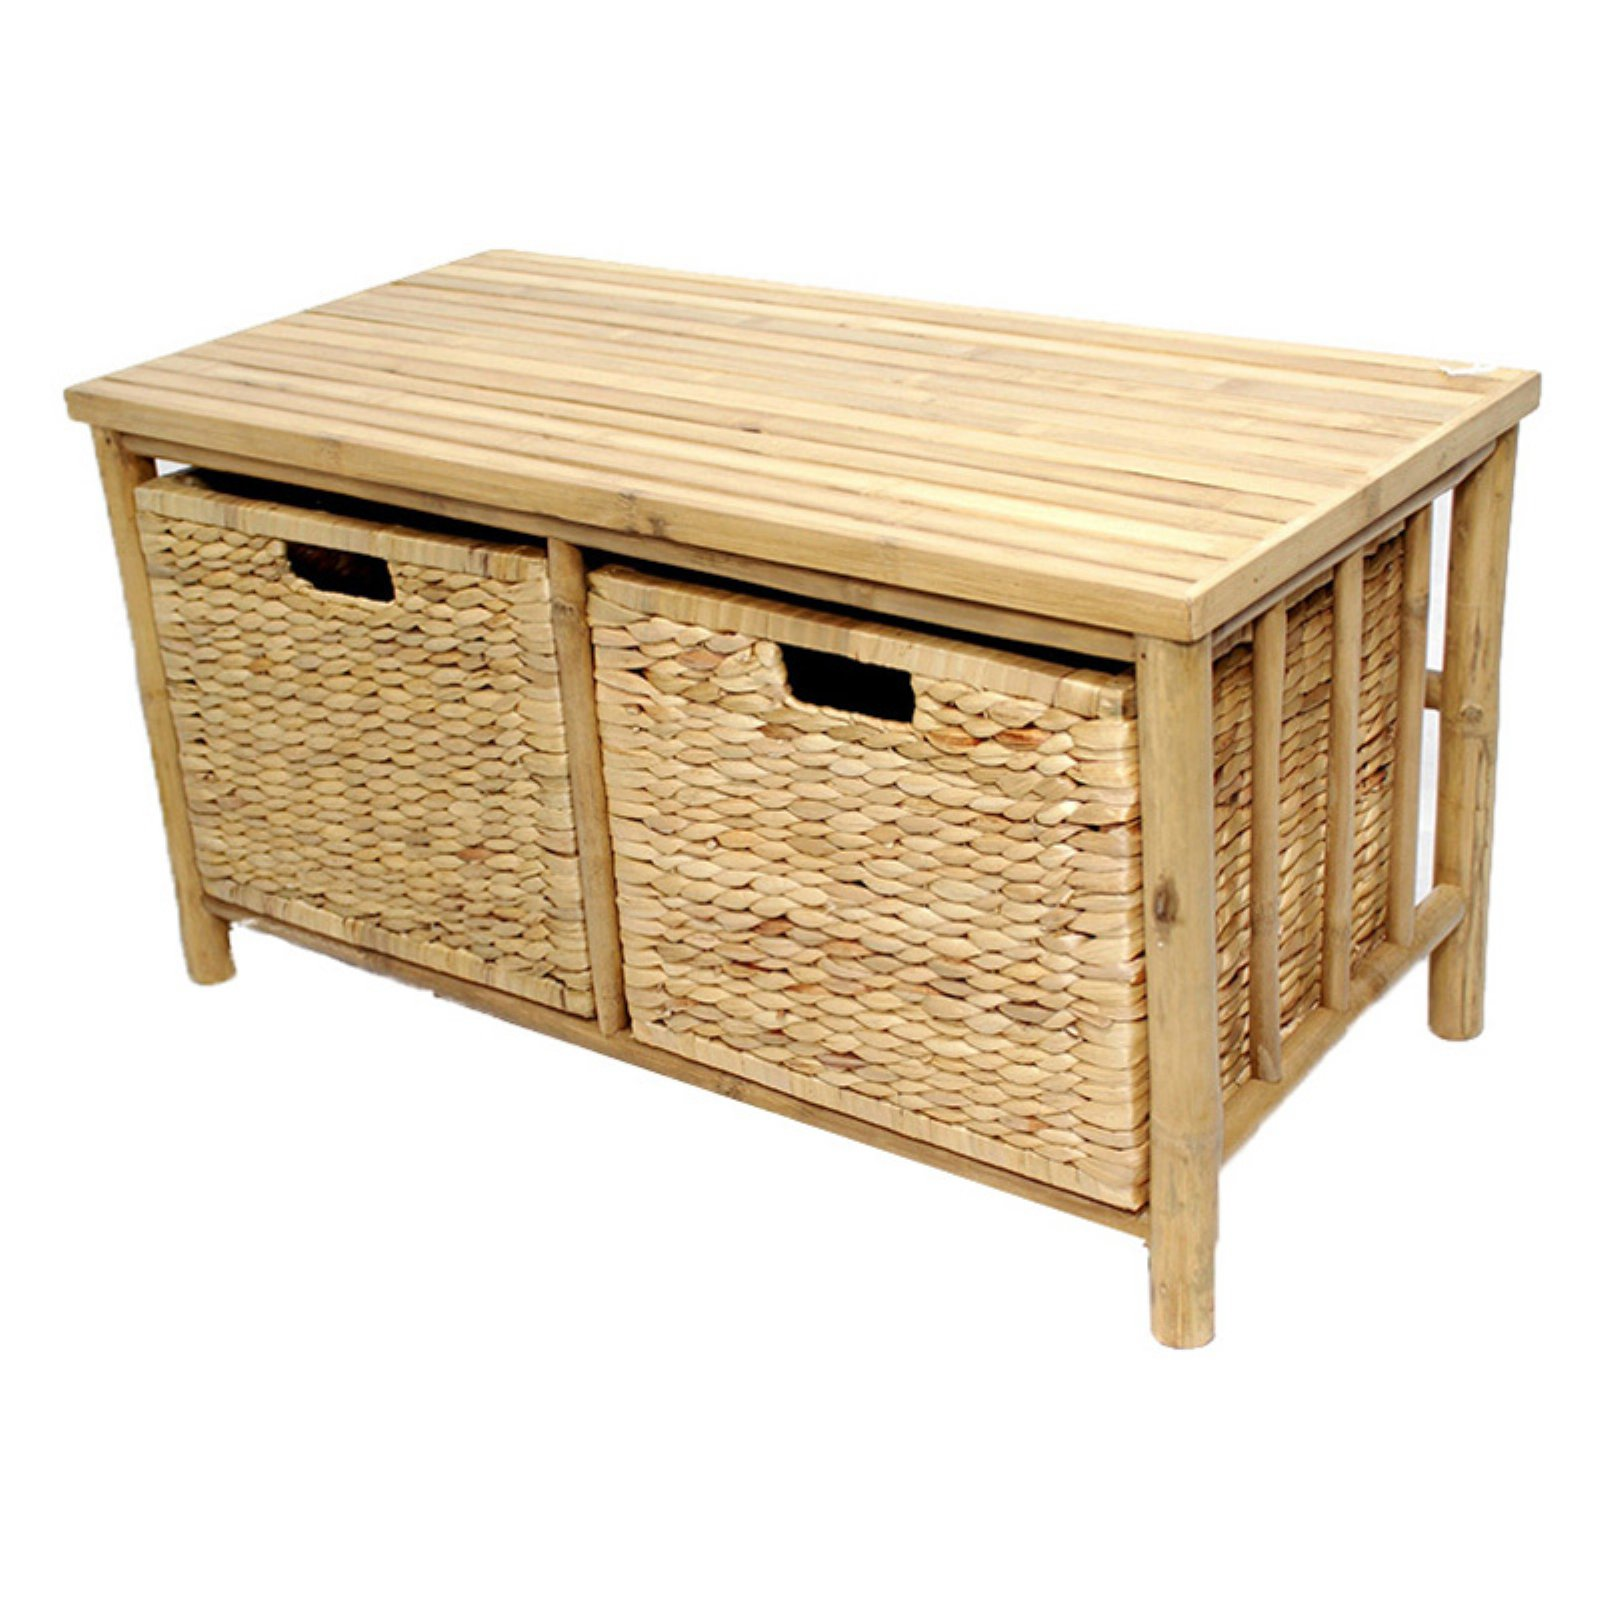 Heather Ann Creations Kona Bamboo 2 Basket Storage Bench